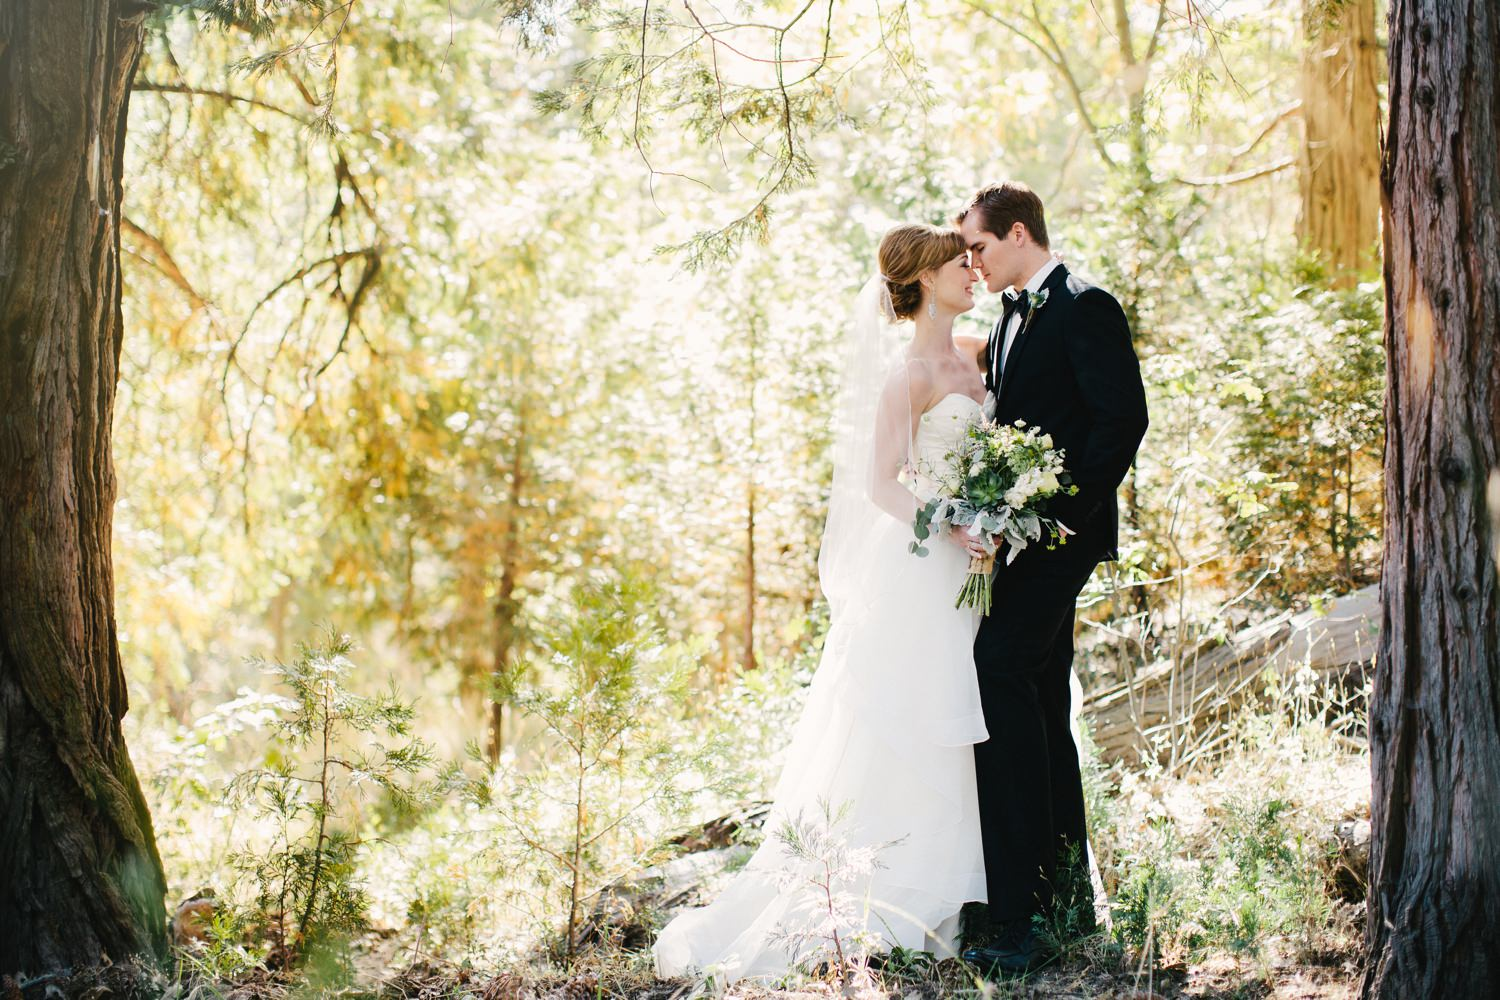 ken + jennifer | Pine Rose Cabins Wedding Photography